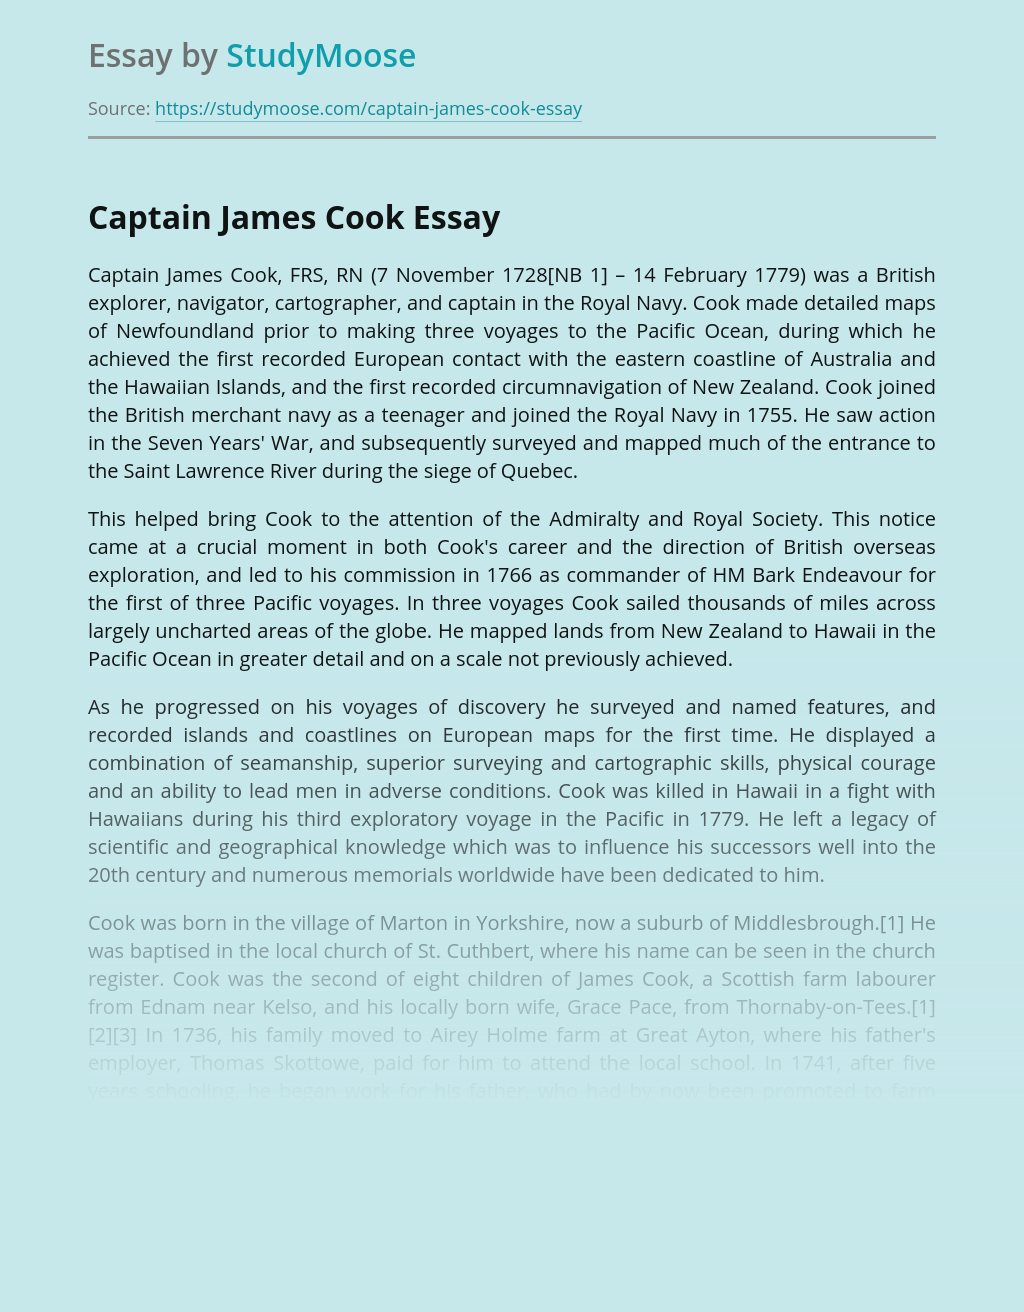 Life and Career of Captain James Cook